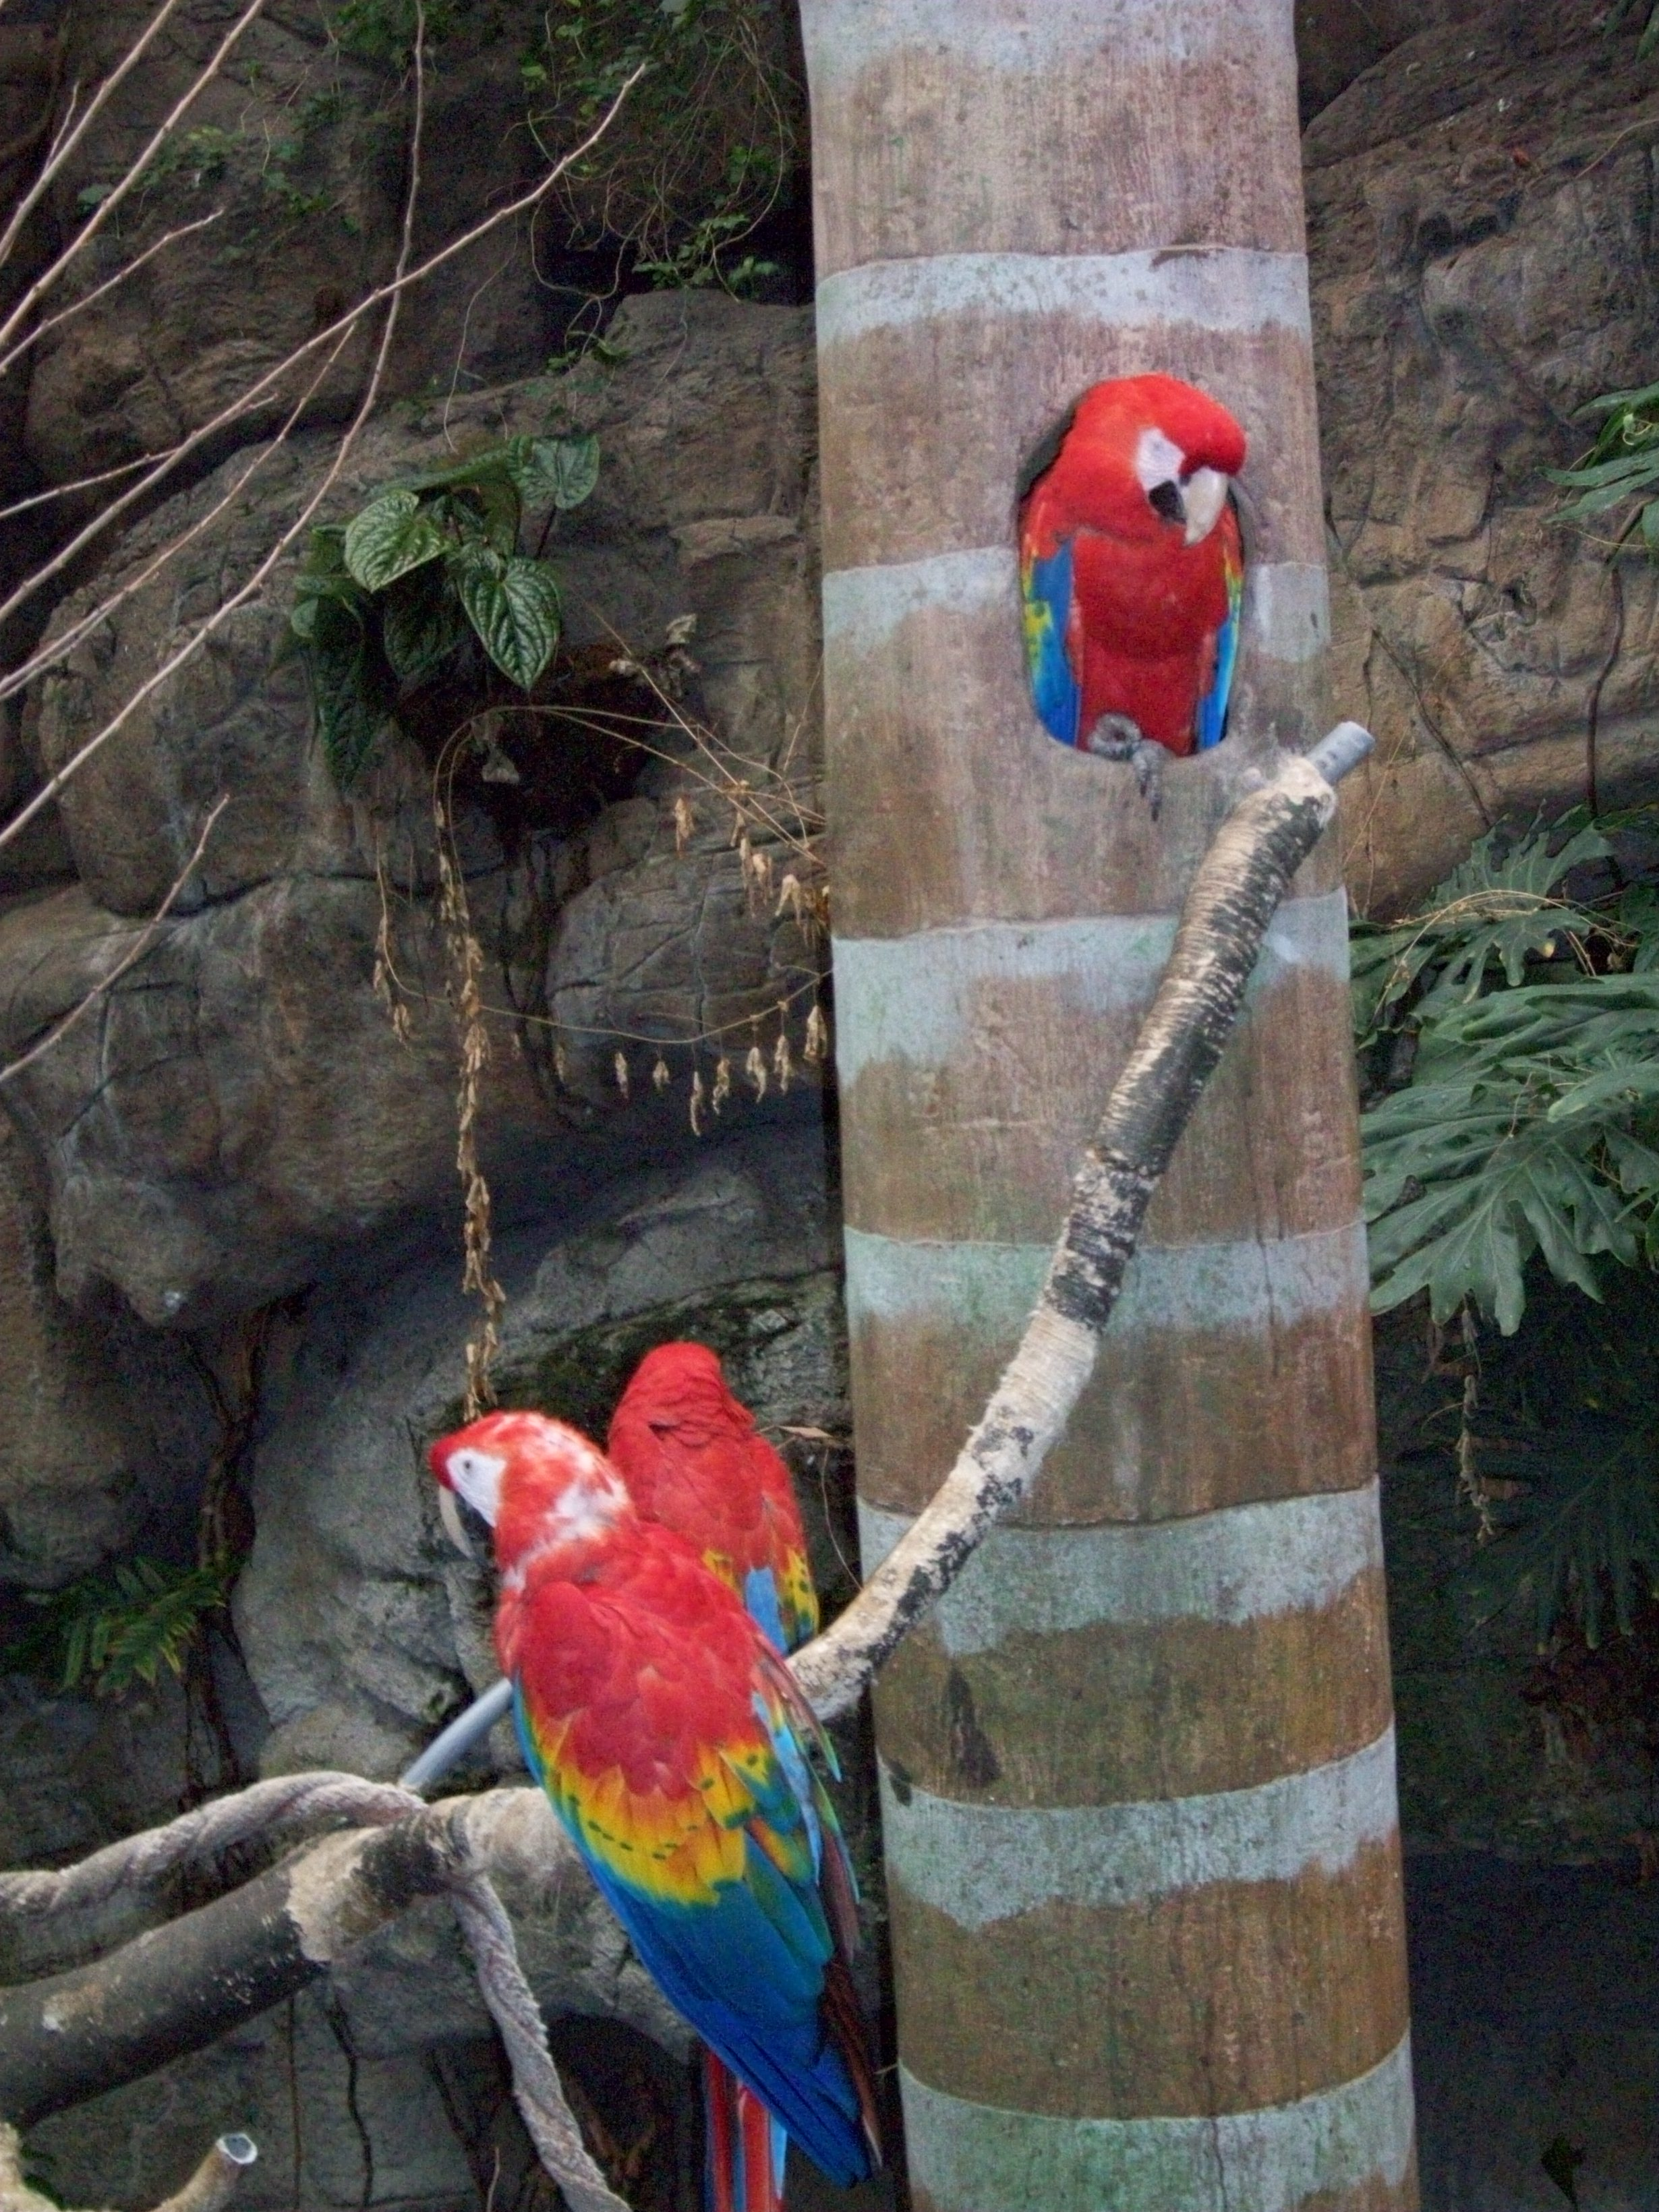 rainforest zoo research paper Breaking news: research suggests that zoos do not 'educate or  published  paper in the academic journal, conservation biology, the idea.